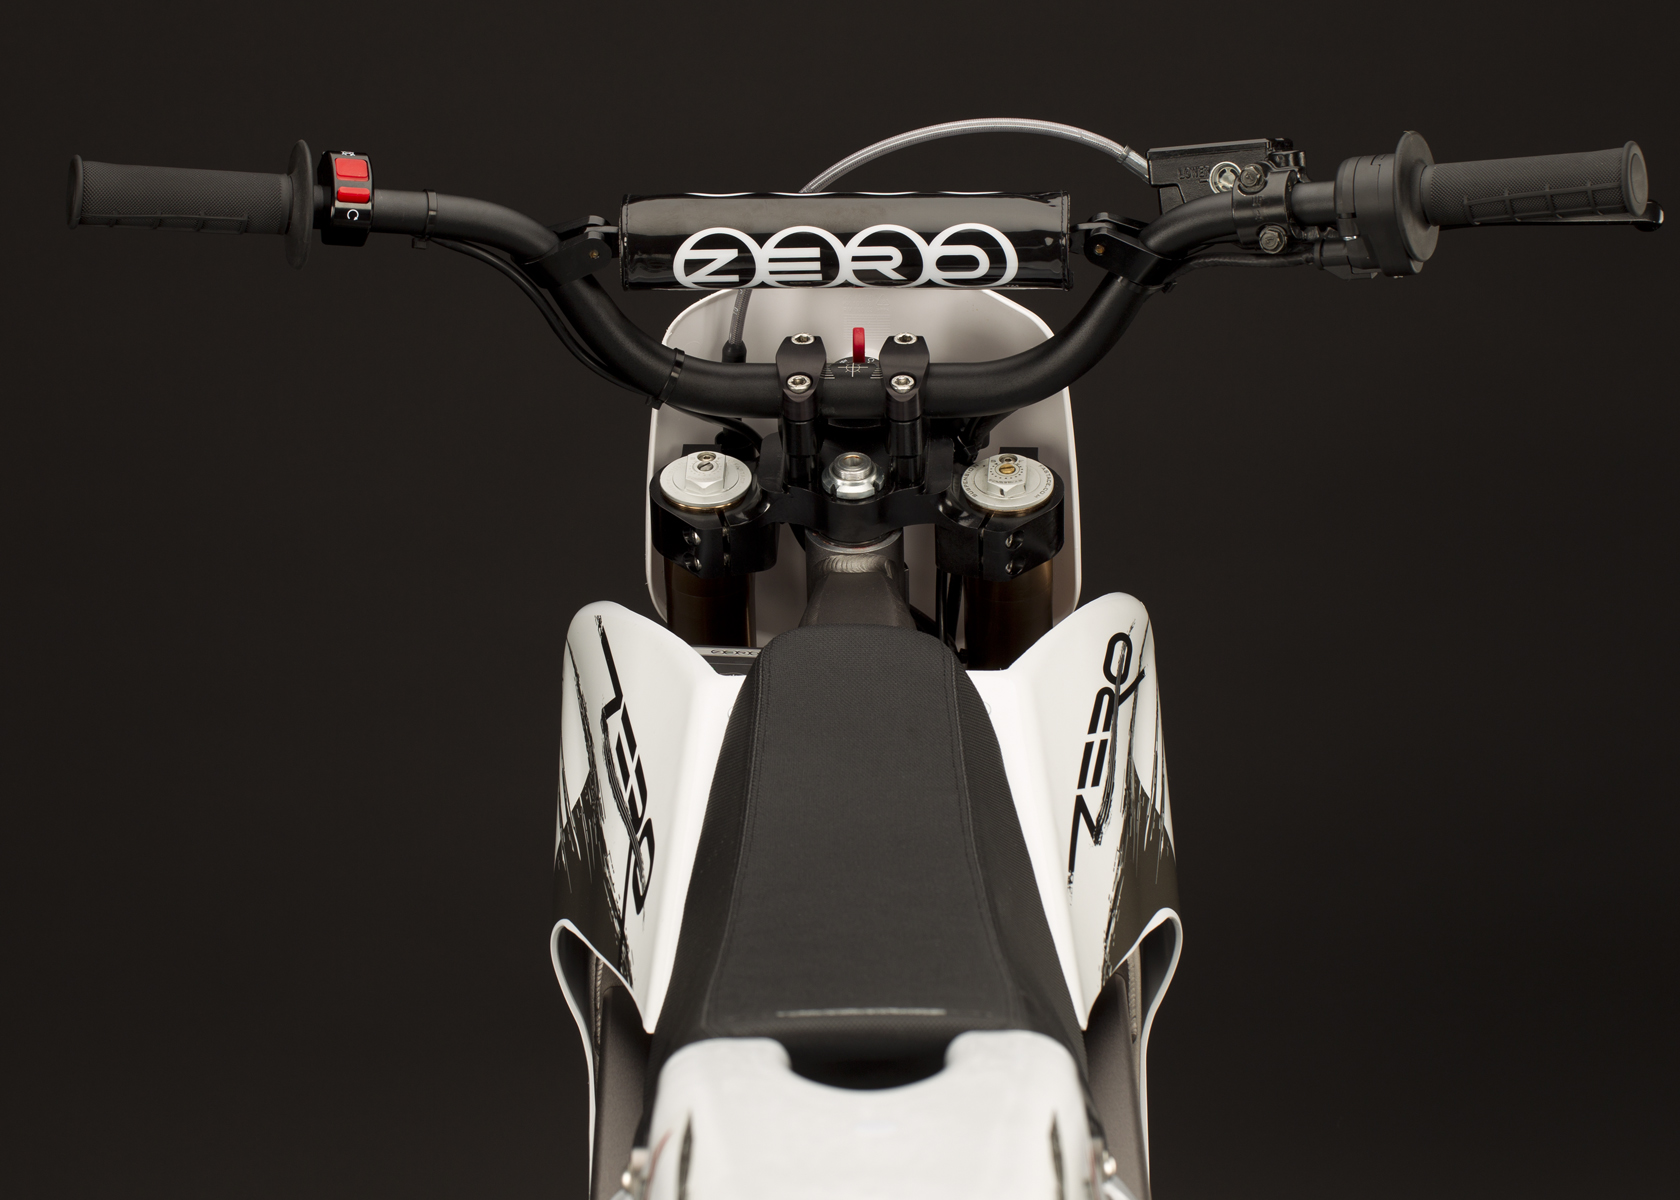 2011 Zero X Electric Motorcycle: Handlebars